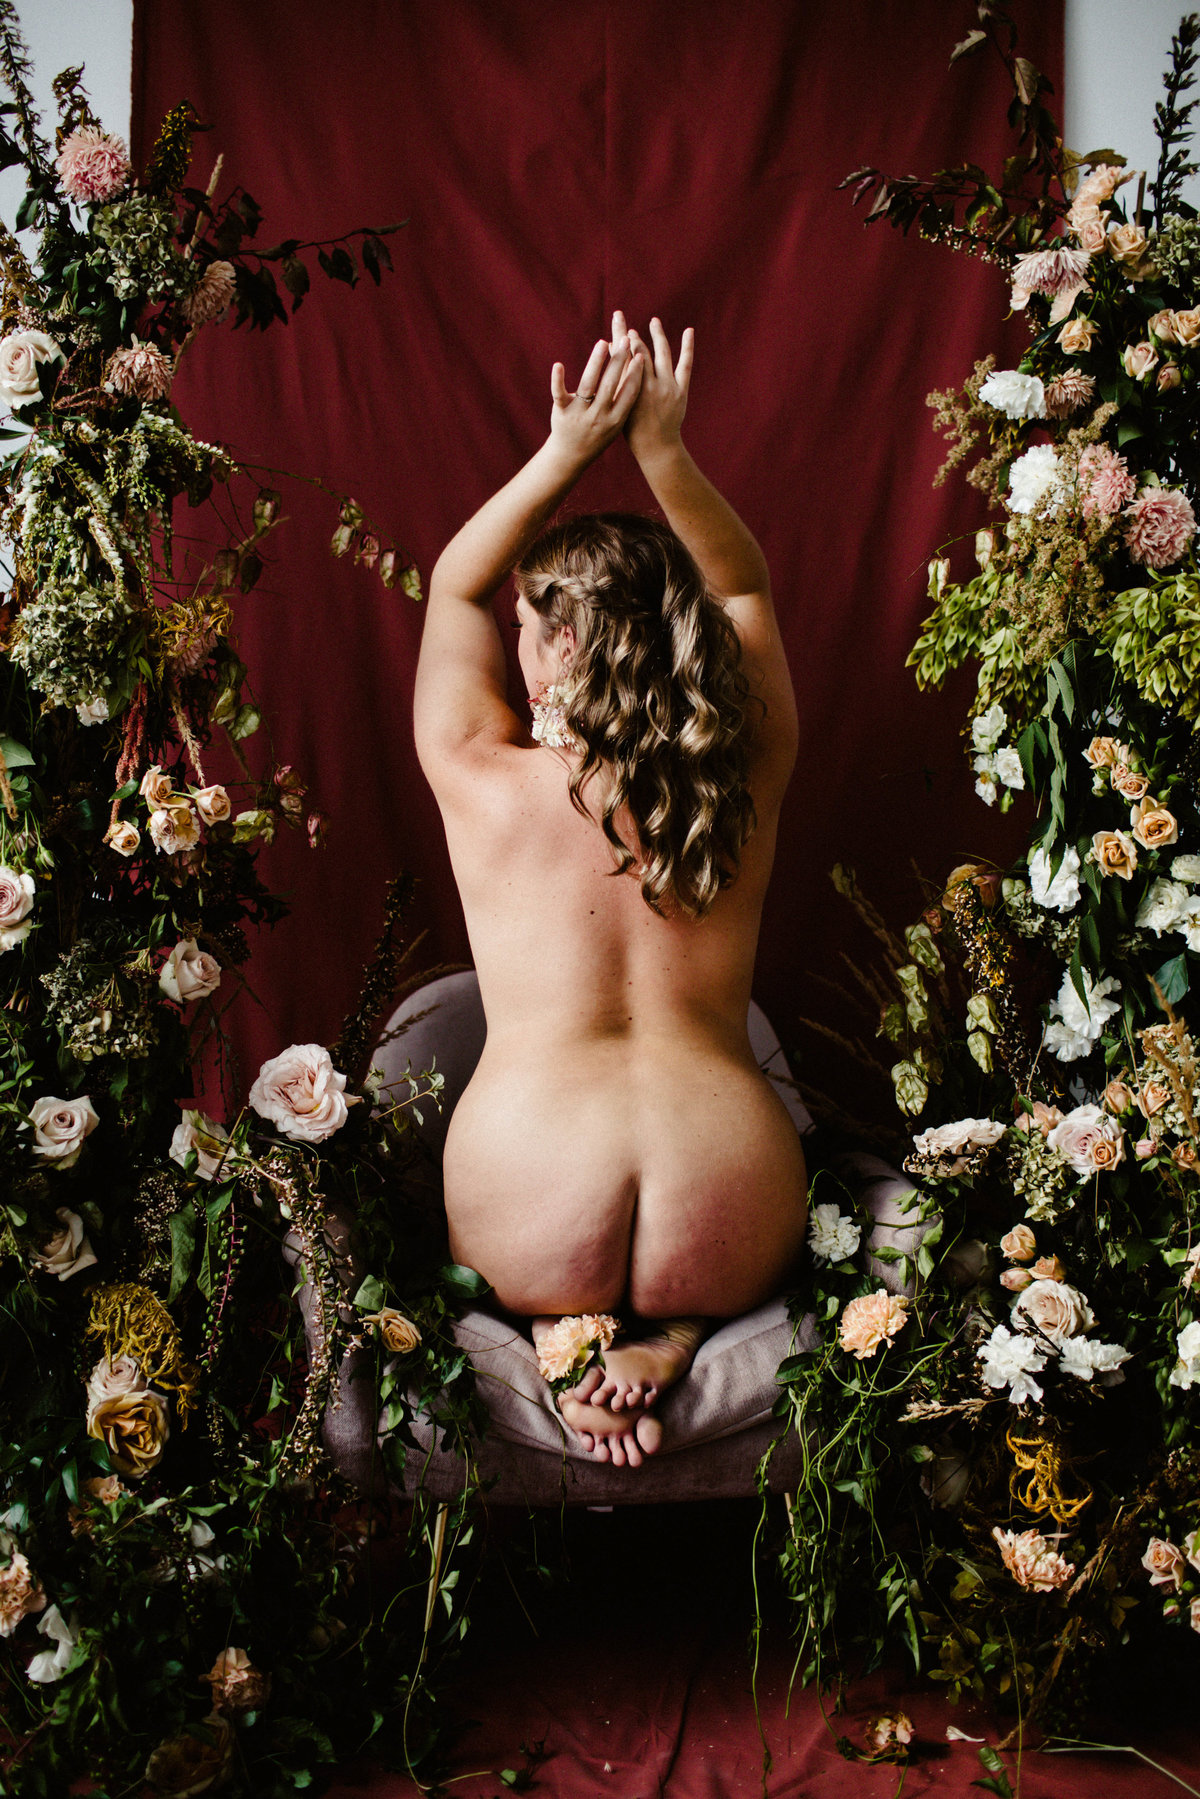 nude woman surrounded by florals and red backdrop